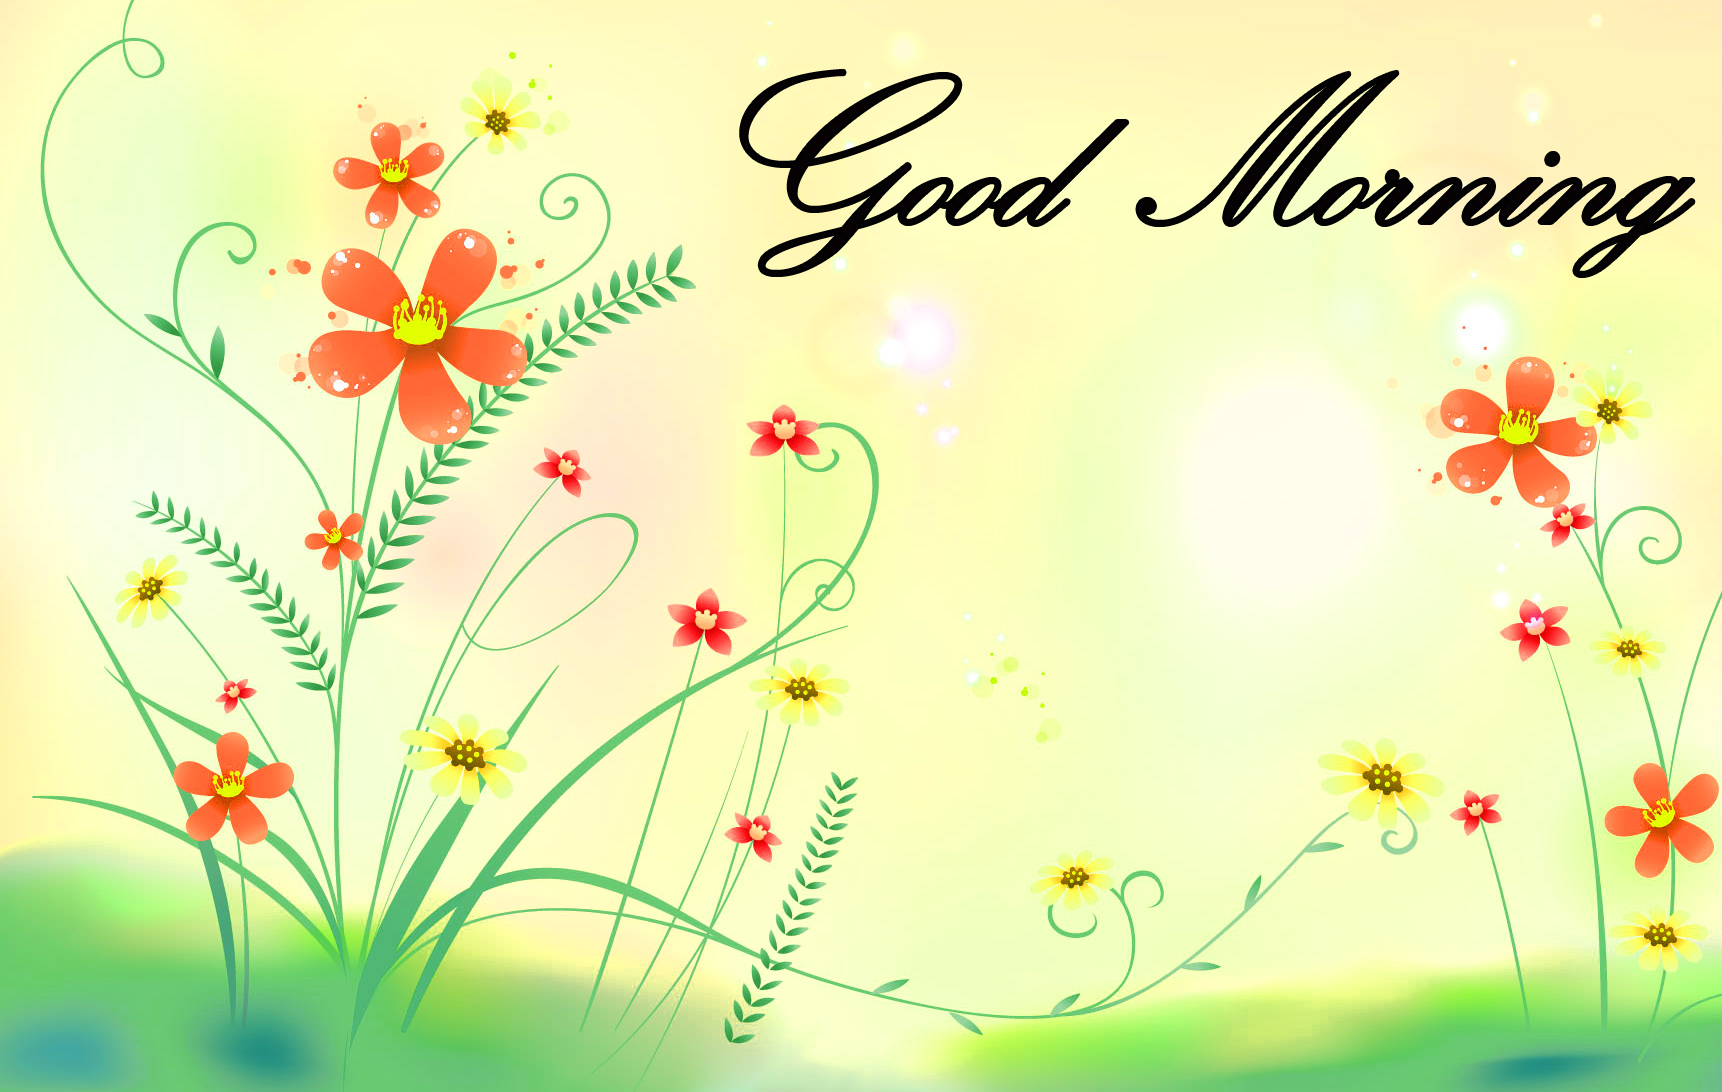 Good Morning Images Wallpaper Pics Download for Best Friends In HD